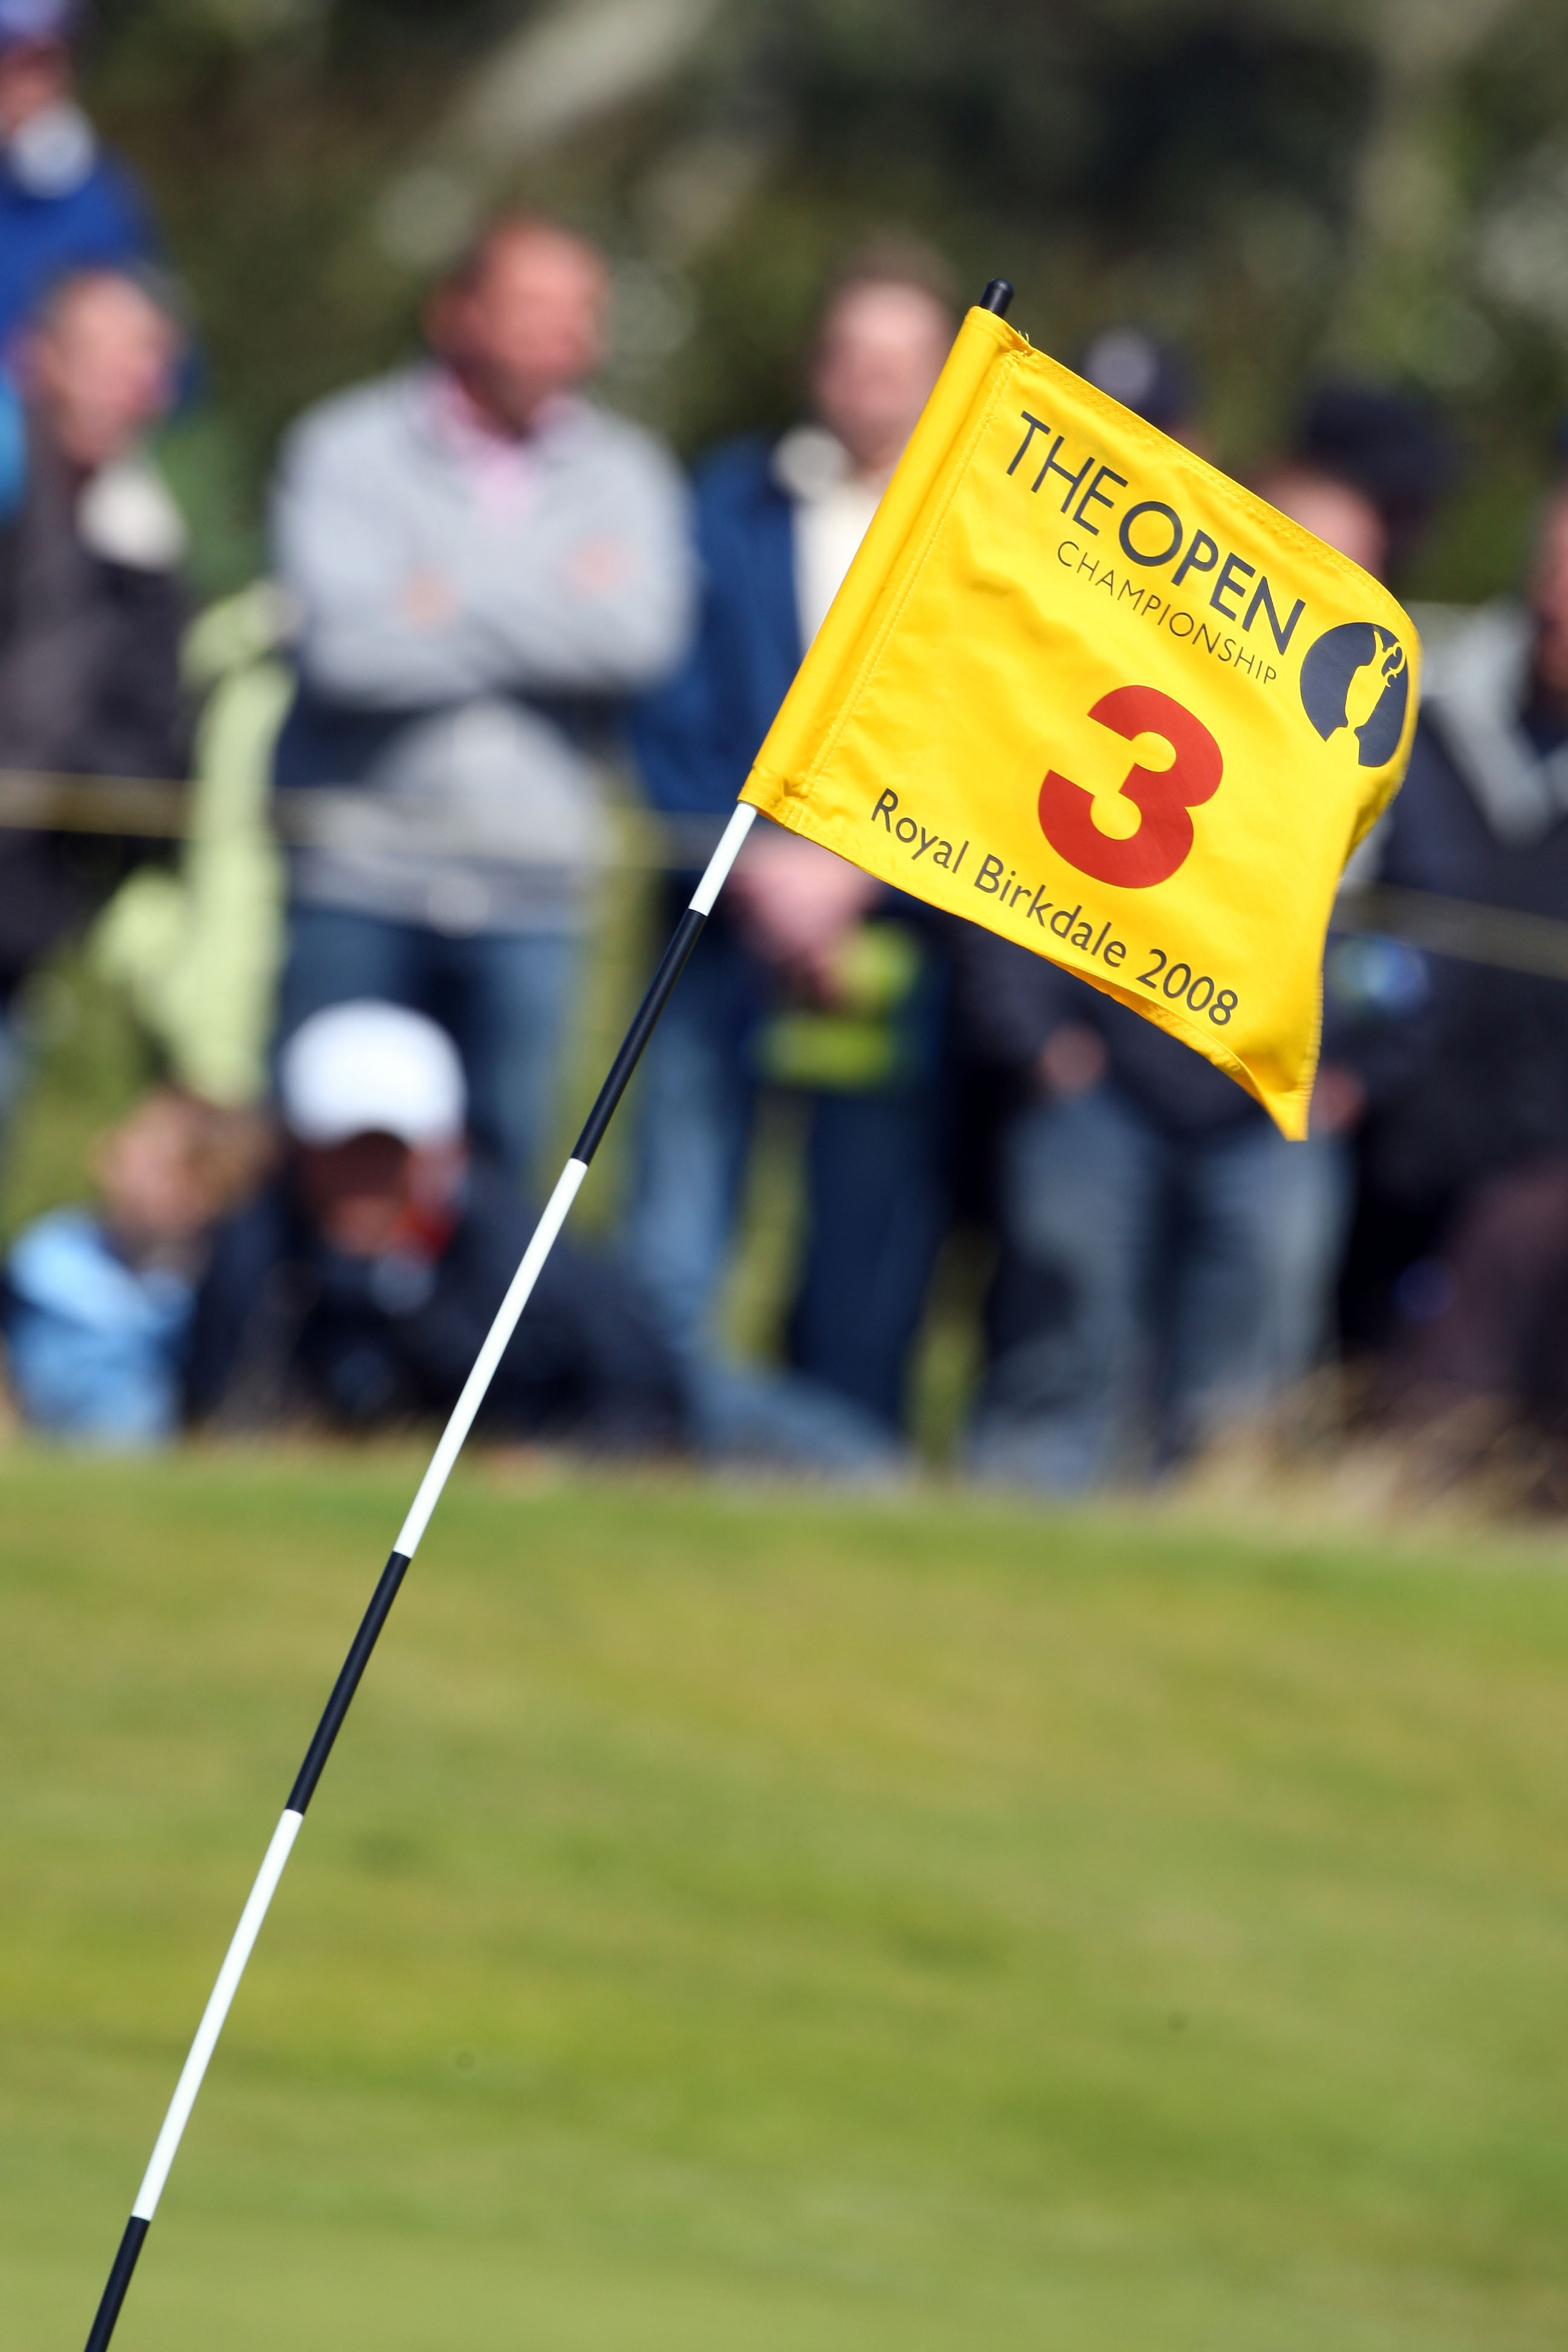 SOUTHPORT, UNITED KINGDOM - JULY 19:  The wind blows the flagstick on the 3rd green during the third round of the 137th Open Championship on July 19, 2008 at Royal Birkdale Golf Club, Southport, England.  (Photo by Stuart Franklin/Getty Images)